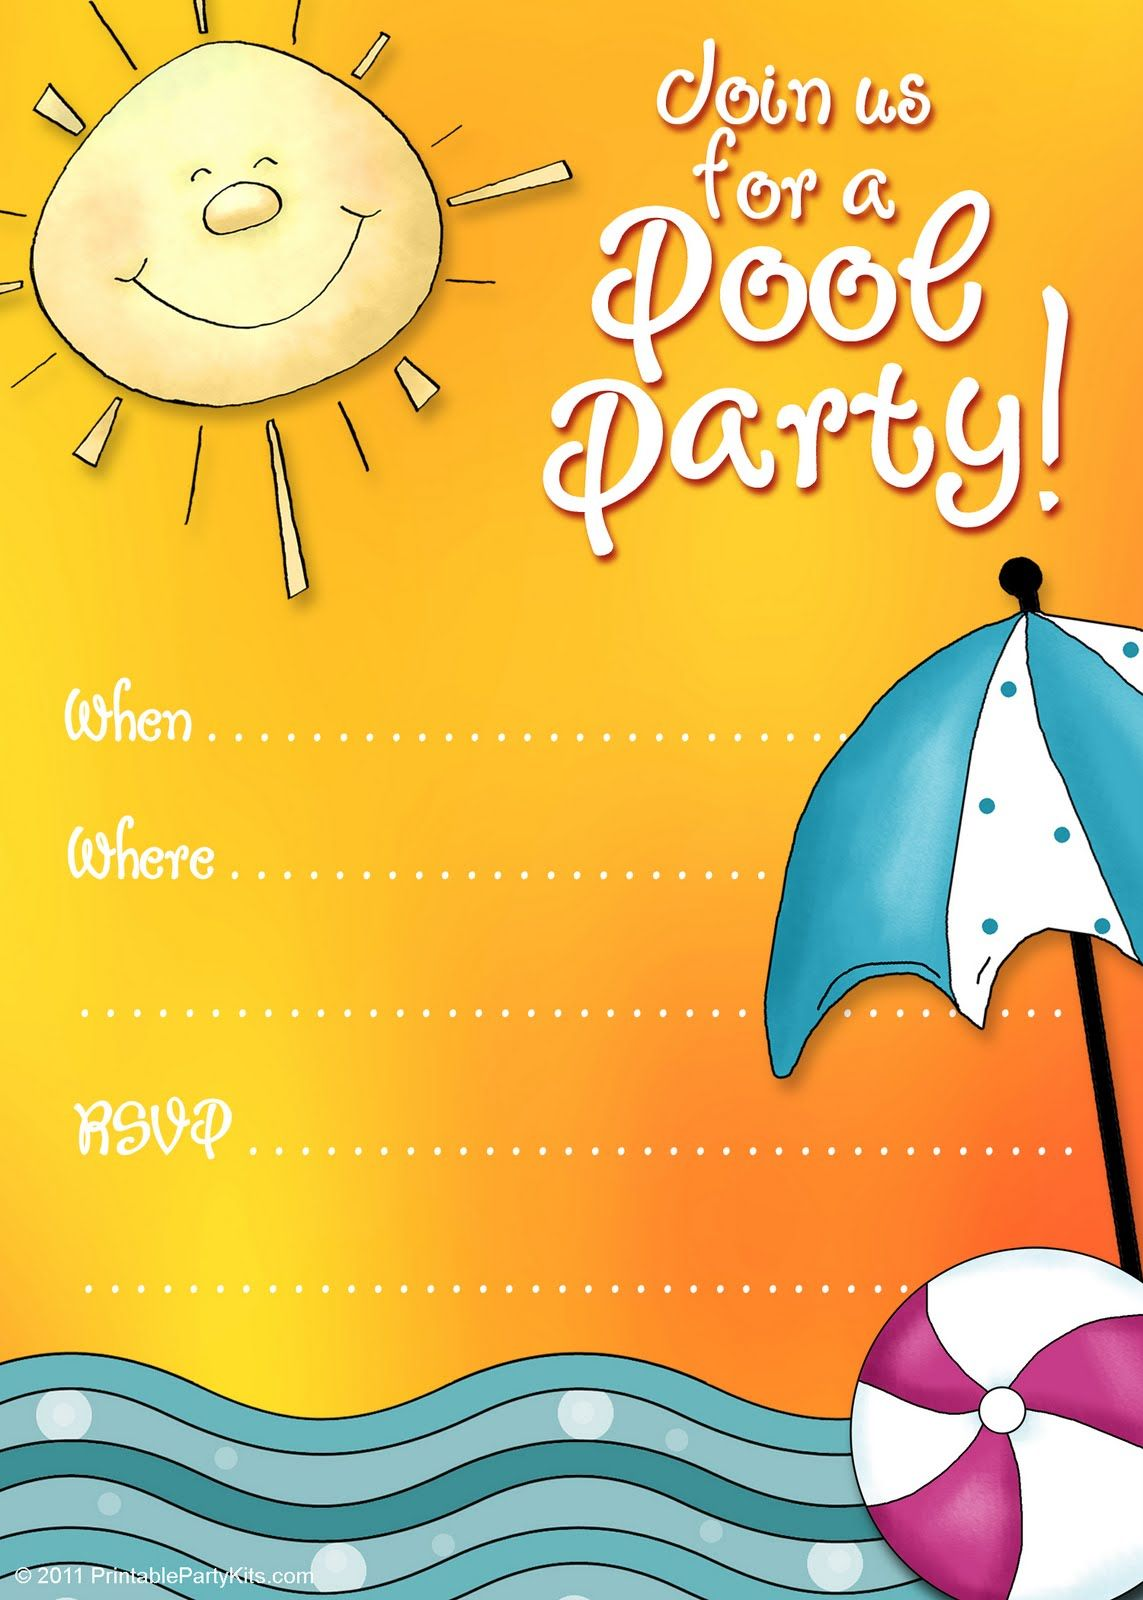 printable pool party invitation template from click on the printable pool party invitation template to see it cake design for